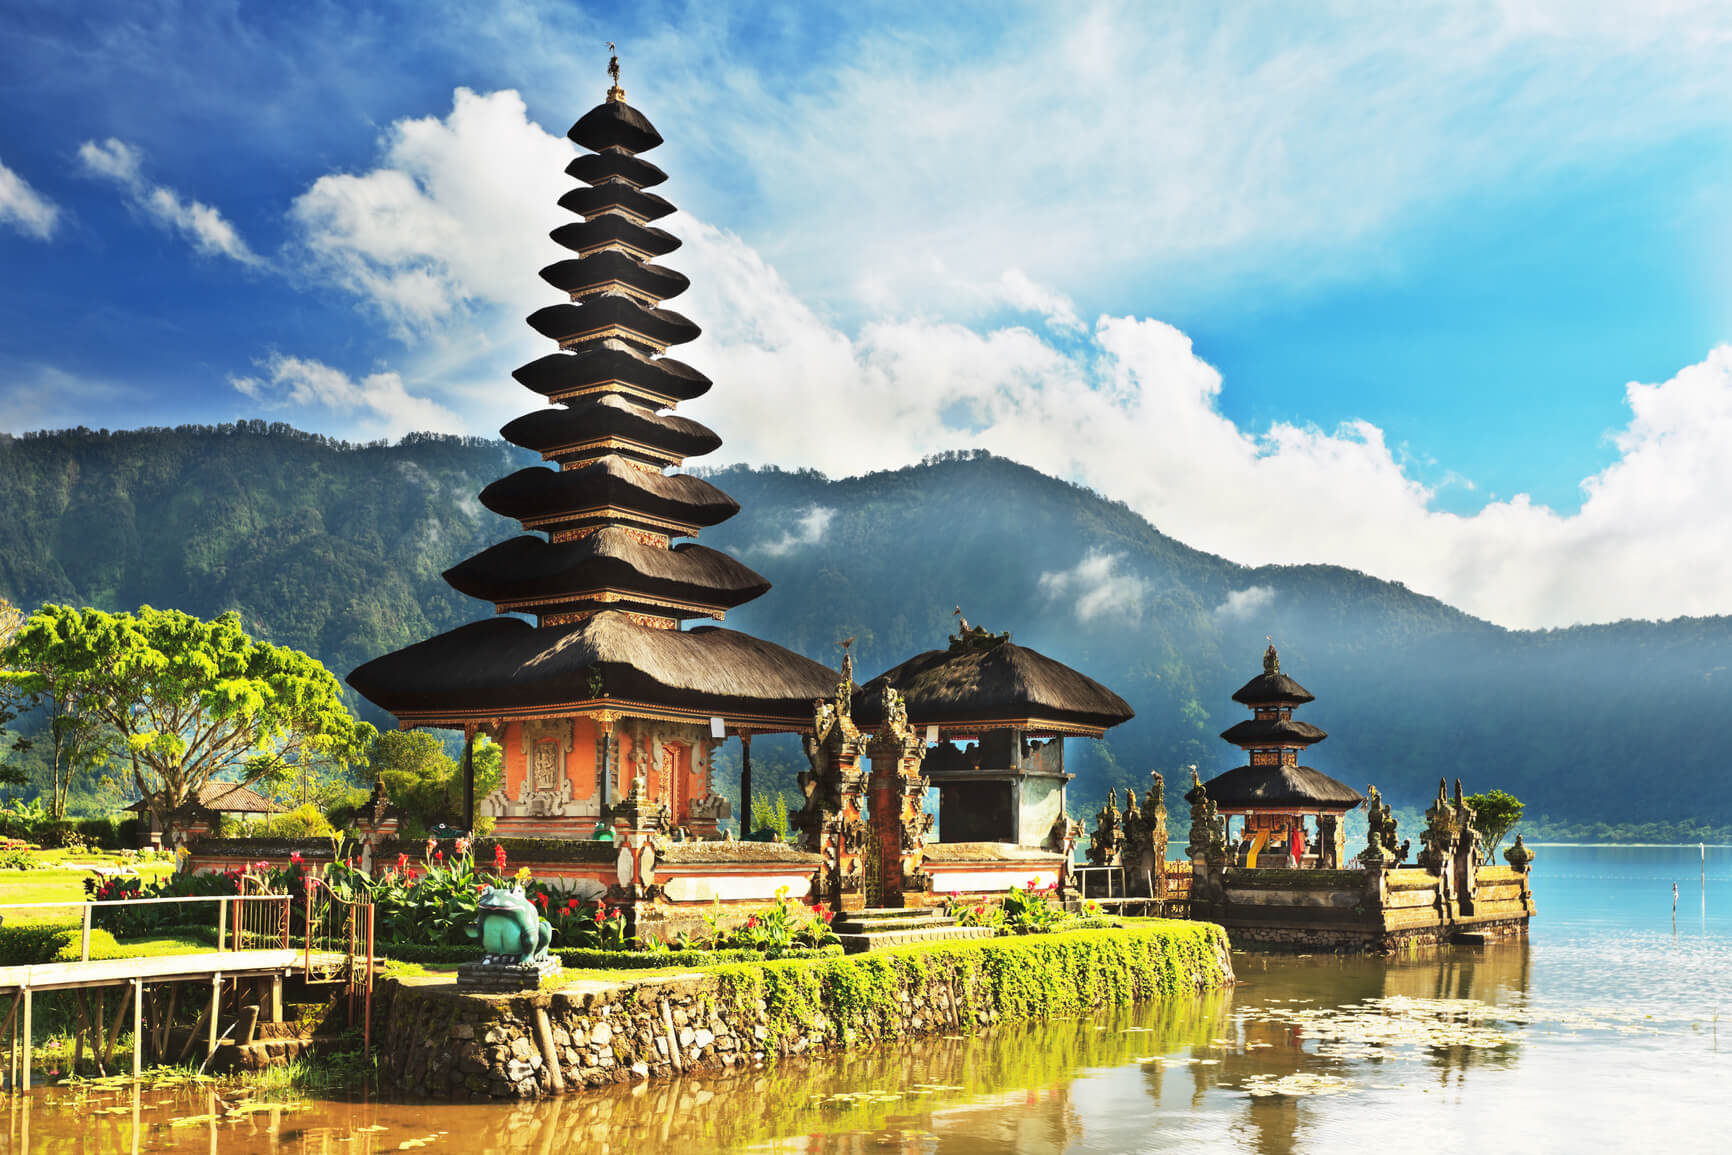 San francisco to bali indonesia for only 455 roundtrip for Cheap hotels in bali indonesia